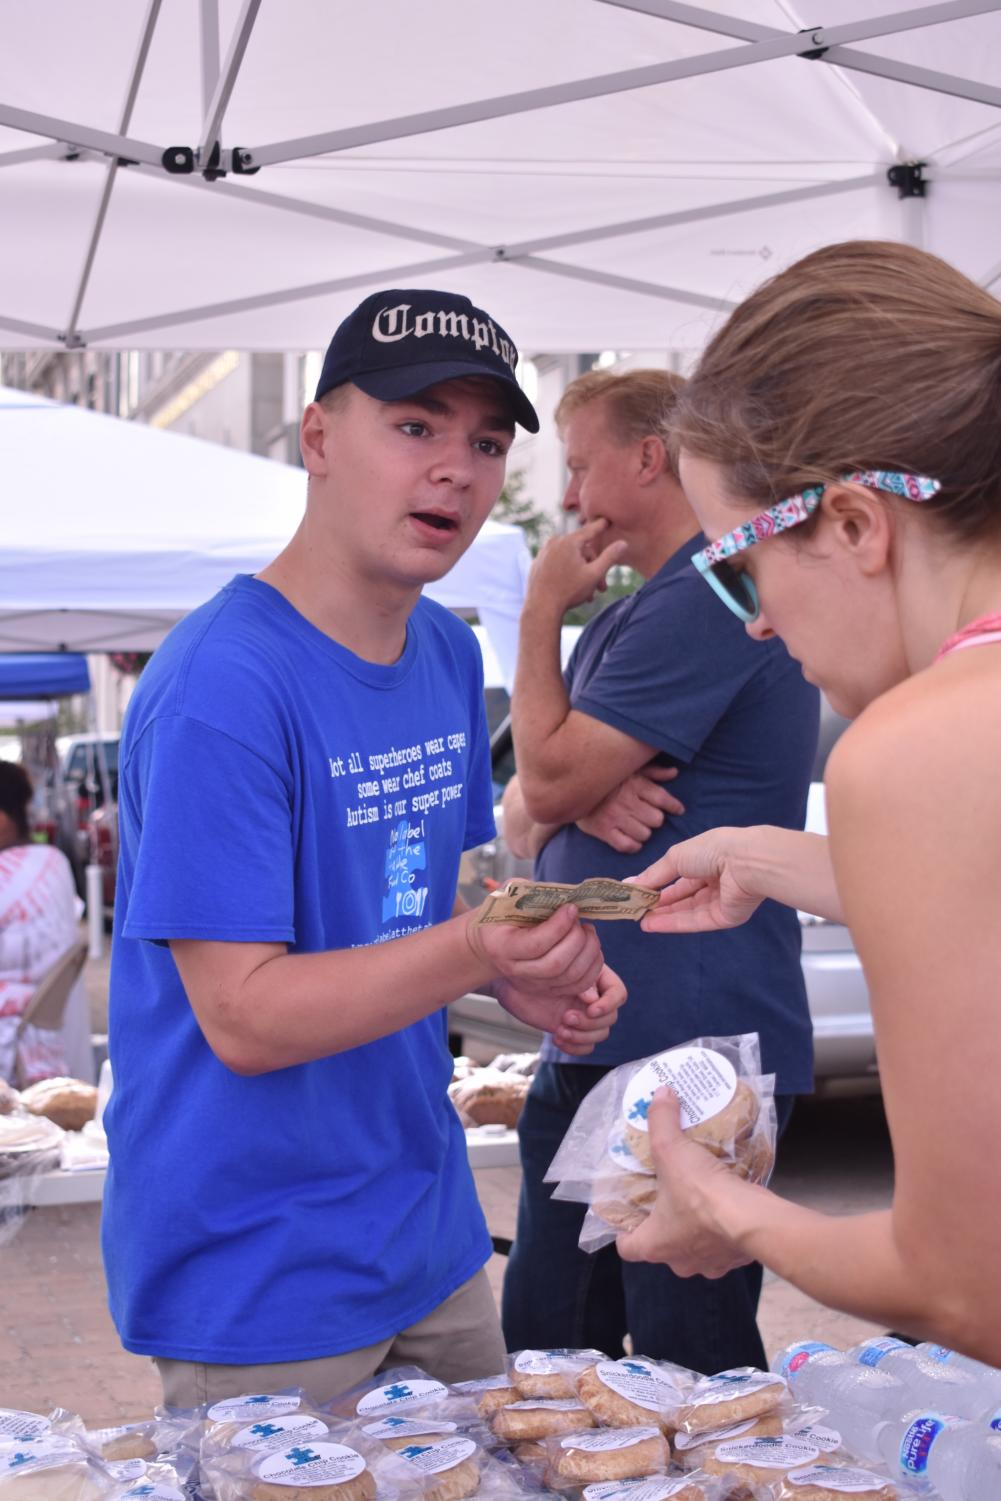 Caiden Wetherald, No Label at the Table Food Co. employee and junior, takes money from a customer at the farmer's market. According to Shelly Henley, owner and founder of No Label at the Table Food Co., the bakery's mission is to provide job skills training for people on the autism spectrum.